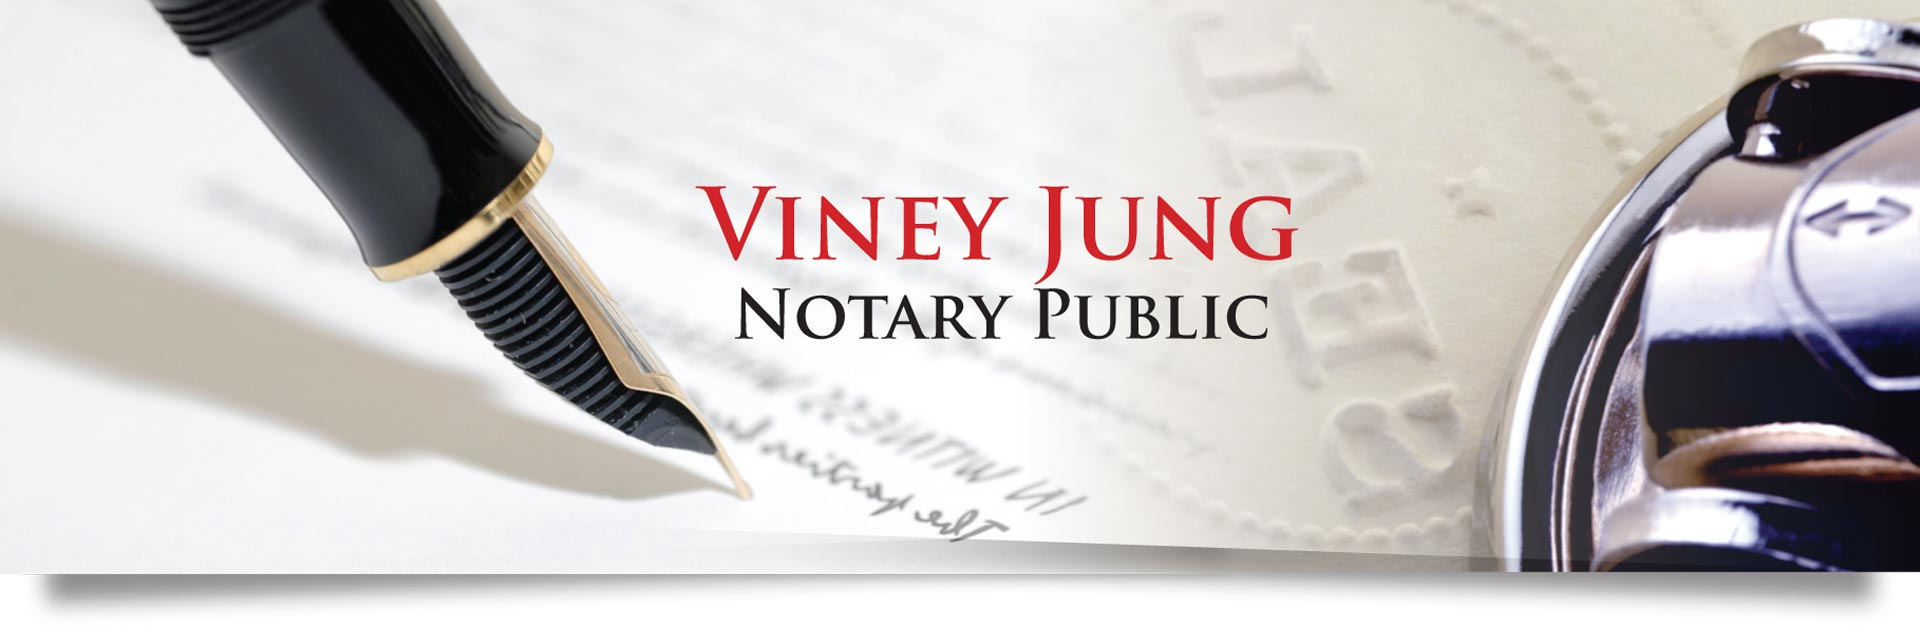 Viney Jung Notary Public